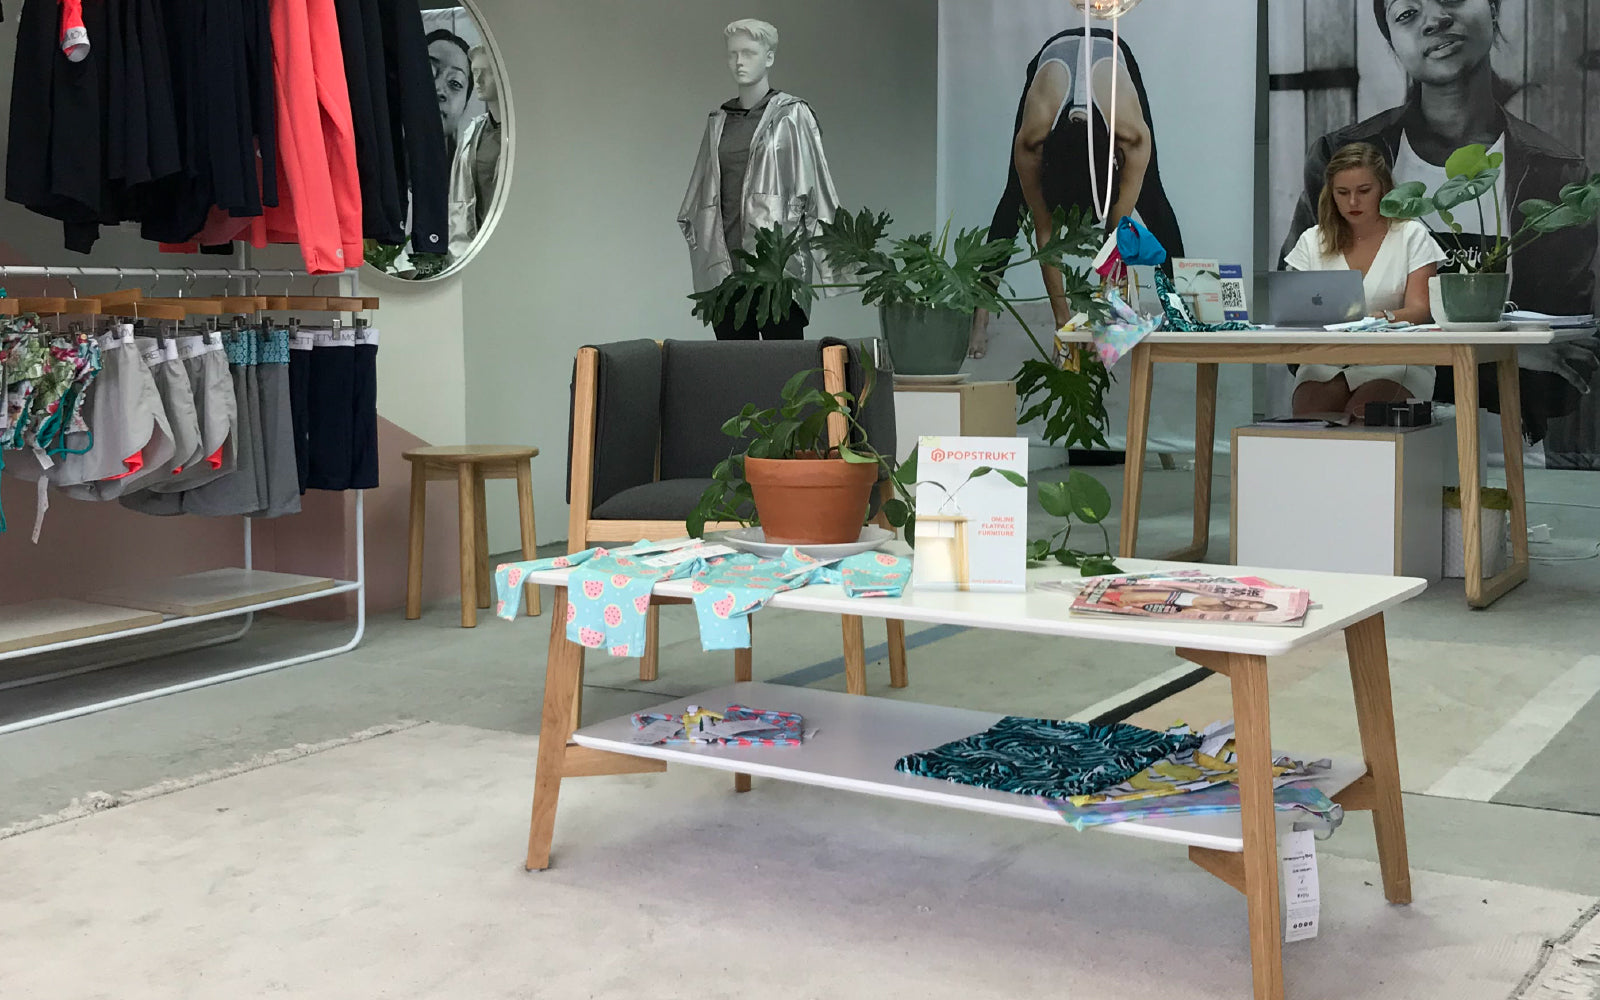 Move Pretty Pop Up Store featuring Popstrukt furniture